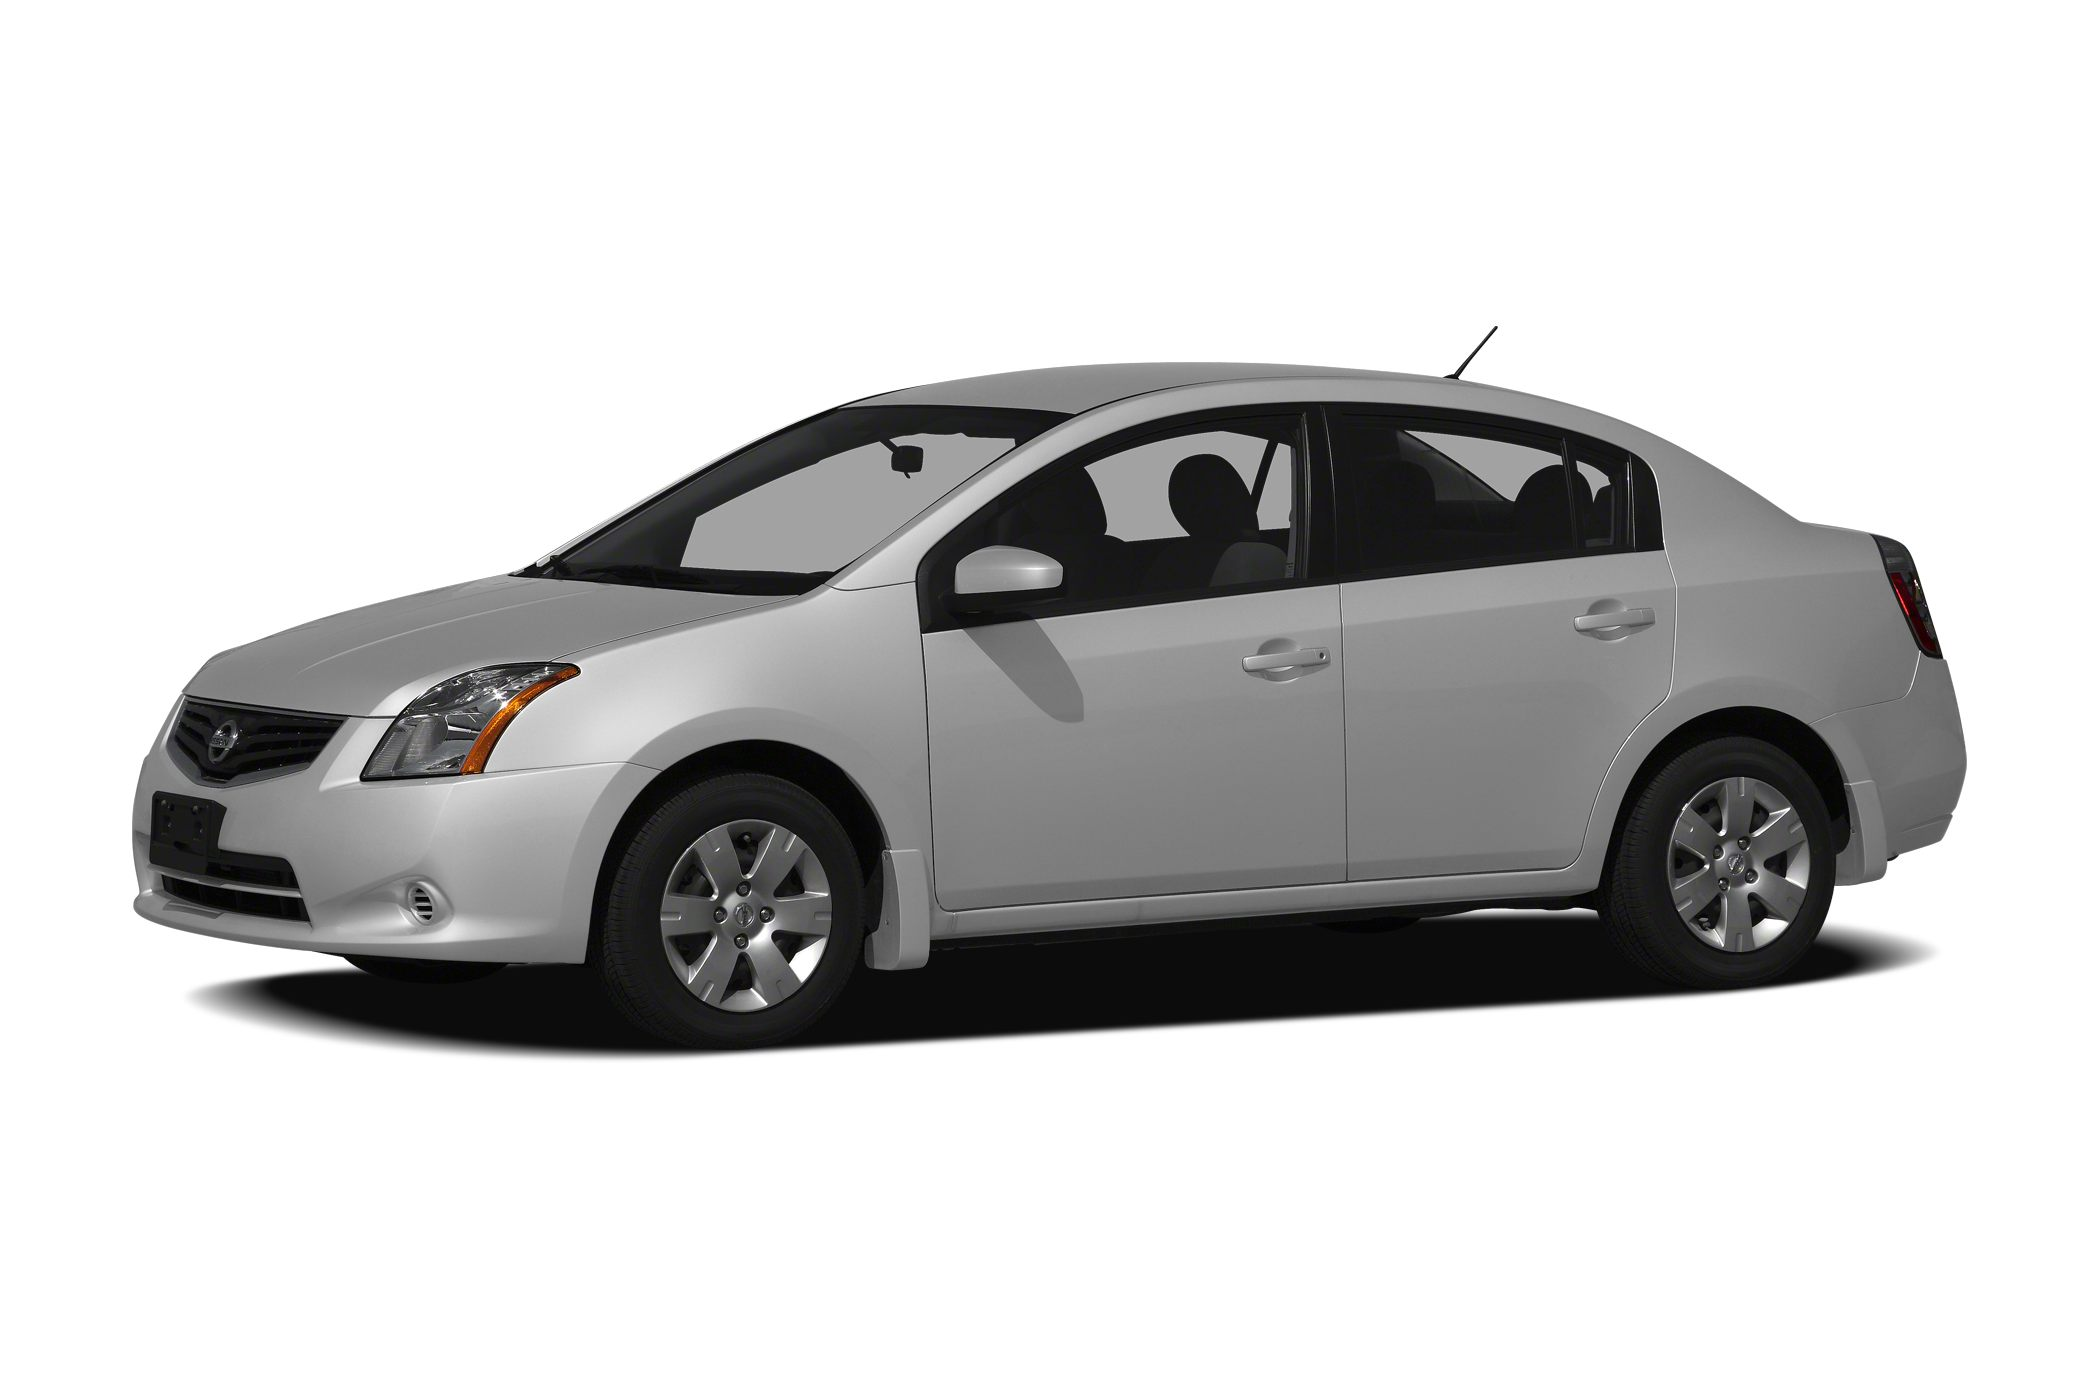 2012 Nissan Sentra 2.0 Sedan for sale in Jackson for $13,595 with 28,771 miles